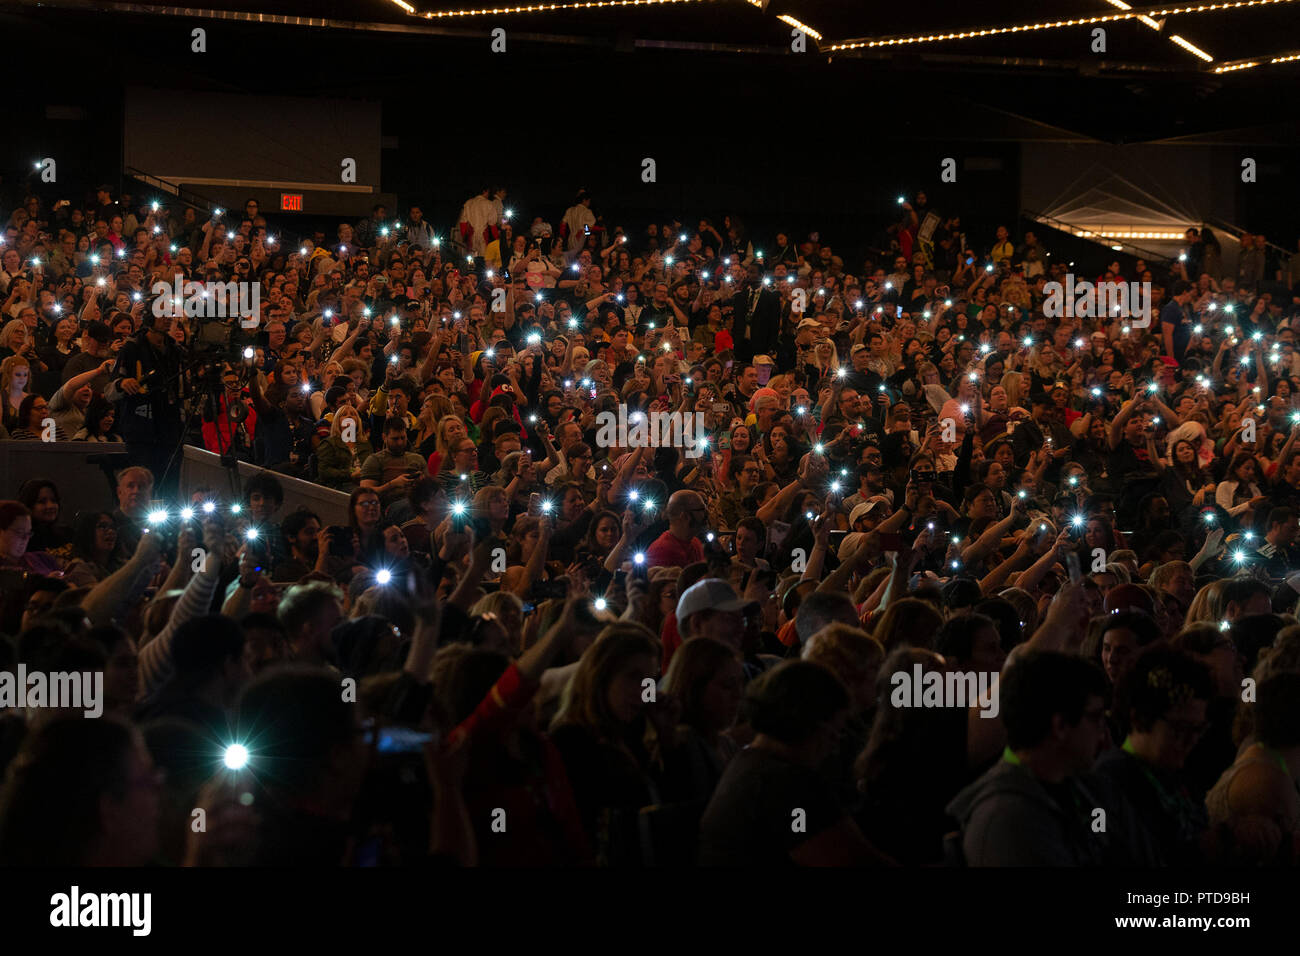 New York, United States. 06th Oct, 2018. Atmosphere during Amazon Prime Good Omens panel at New York Comic Con at Hulu Theater at Madison Square Garden Credit: Lev Radin/Pacific Press/Alamy Live News - Stock Image